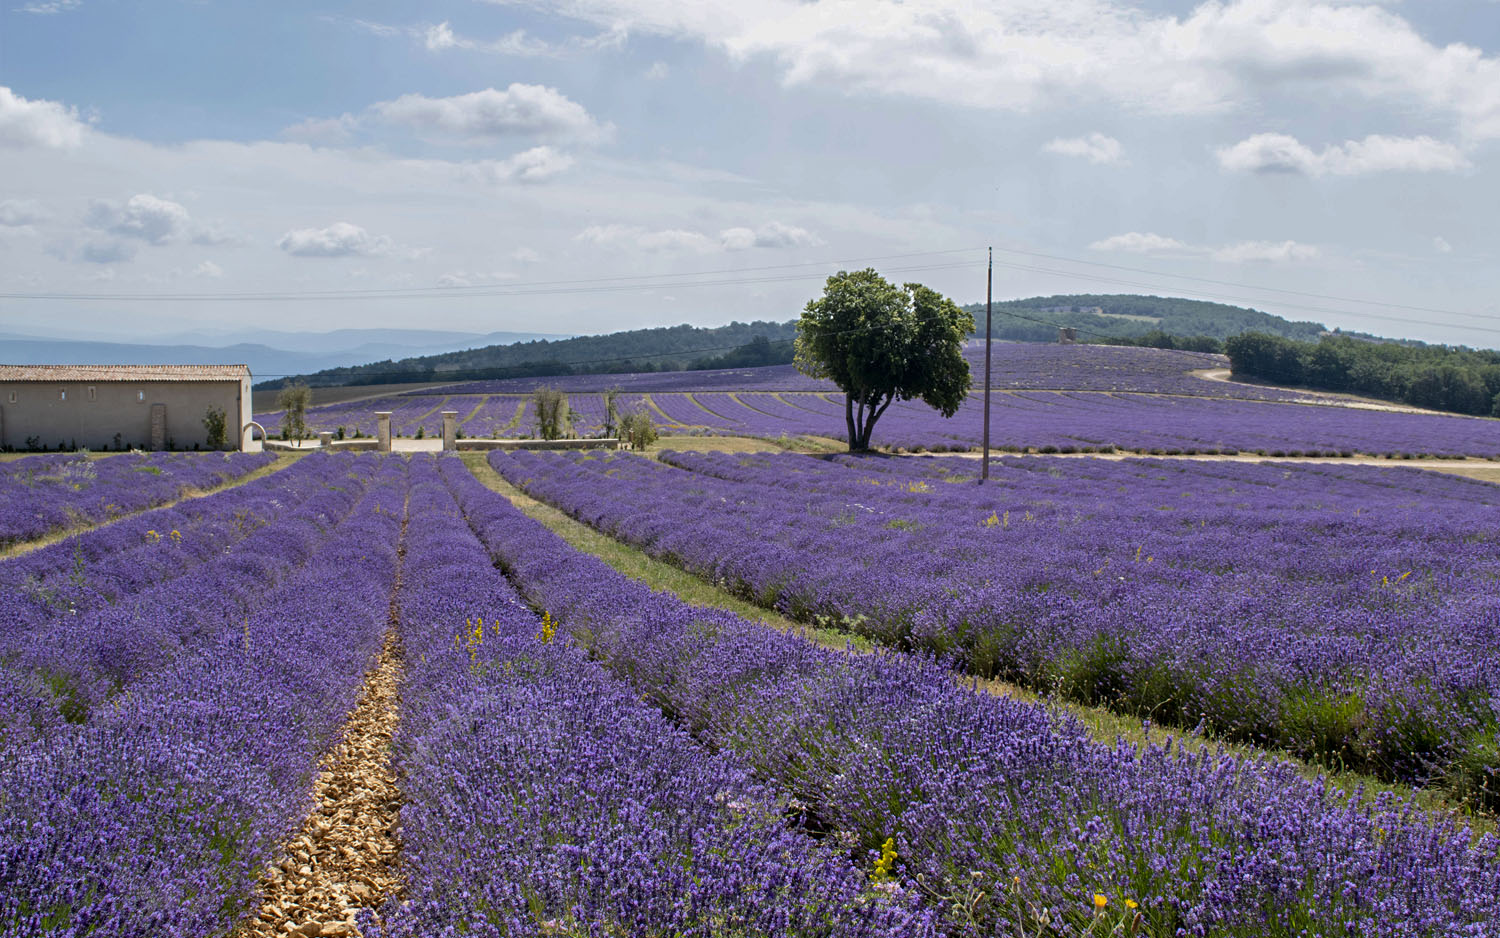 If you don't mind a difficult mountain drive, the fields at  Le Chateau du Bois  are beyond special. The essential oils they produce are used in the finest perfumes.